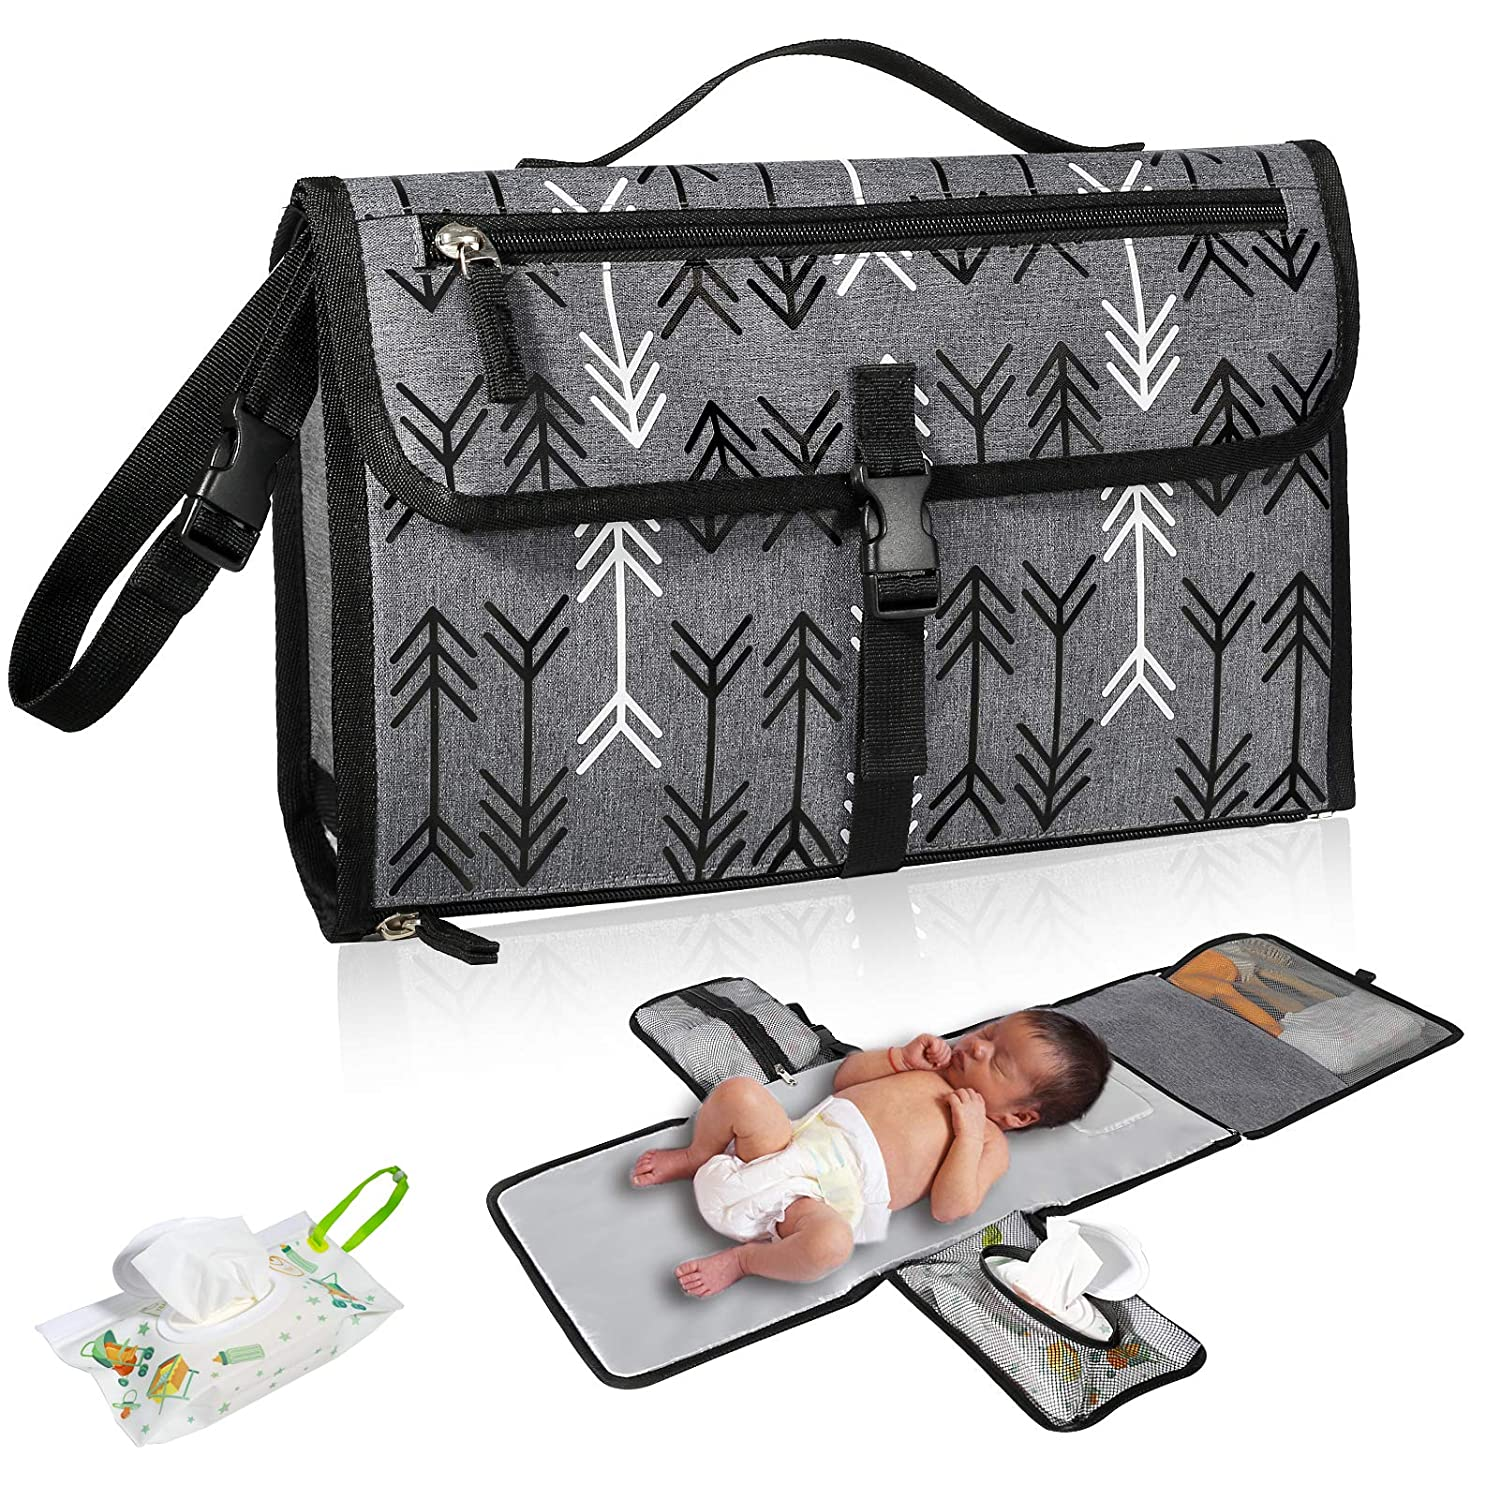 Baby Portable Diaper Changing Pad, Waterproof Travel Changing Mat for Newborn, Foldable Diaper Clutch with Built-in Head Cushion Wipes Pocket for Change Table Baby Shower Gifts, Grey